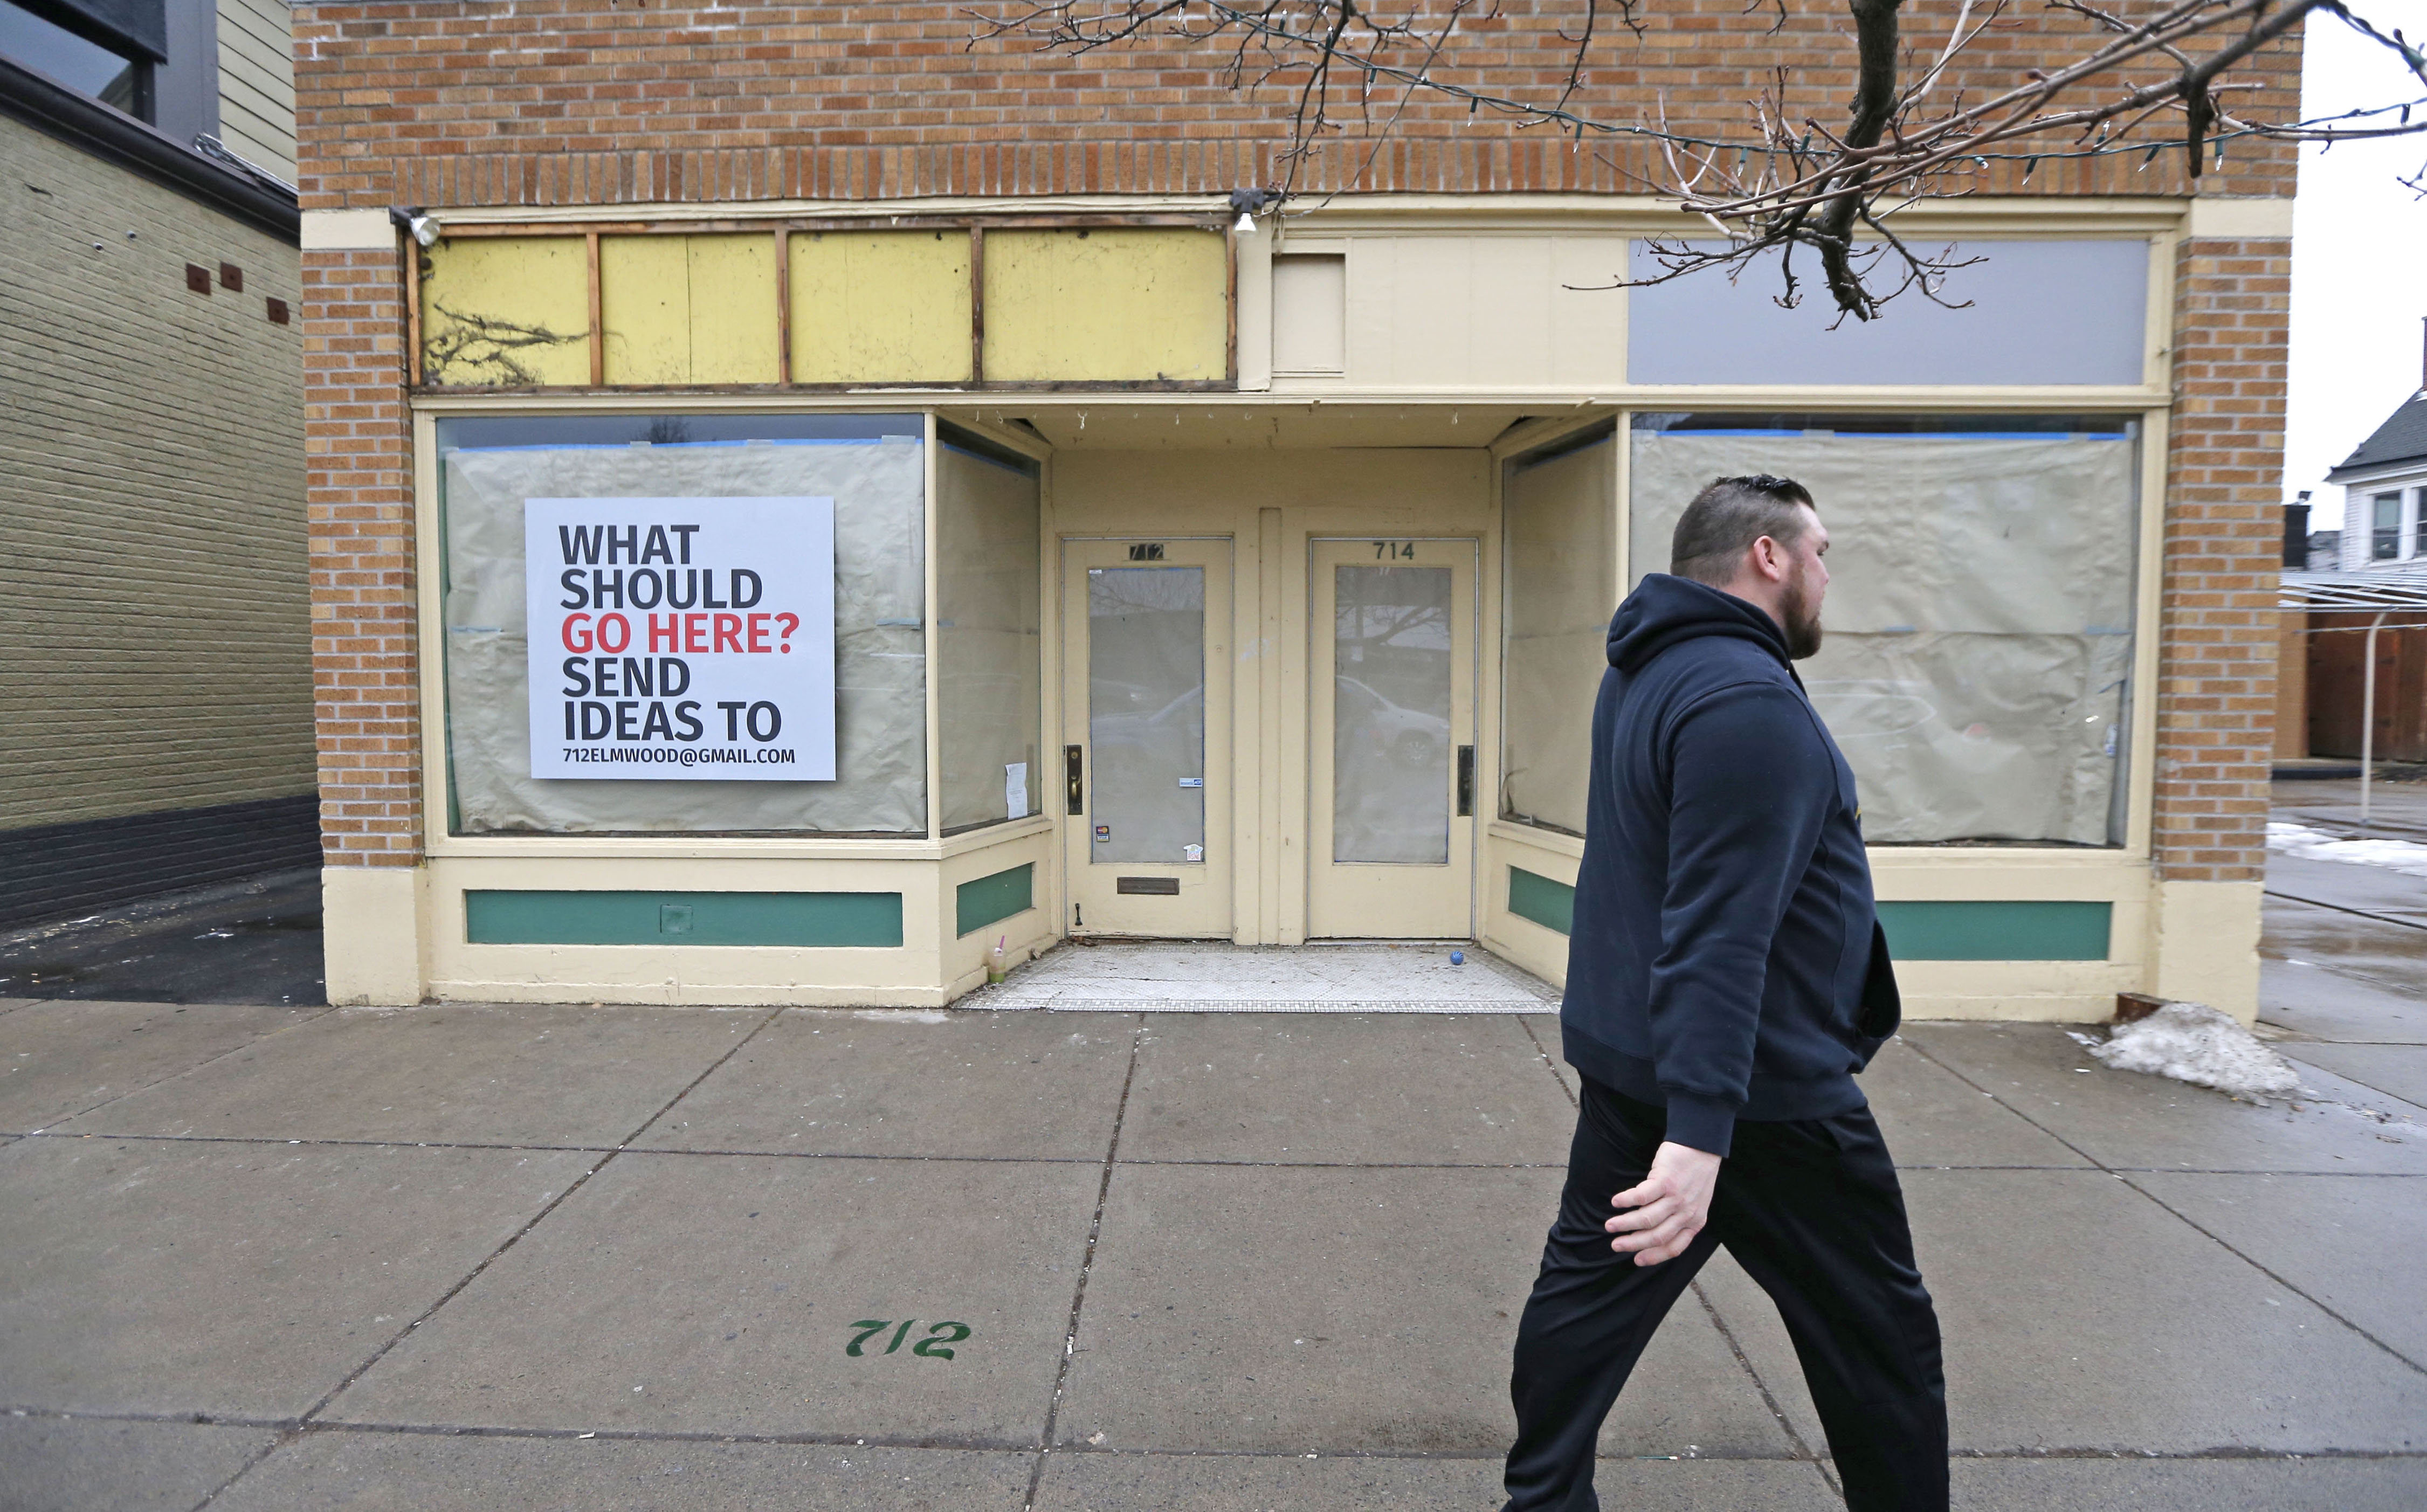 Elmwood Avenue s empty storefronts causing concern – The Buffalo News